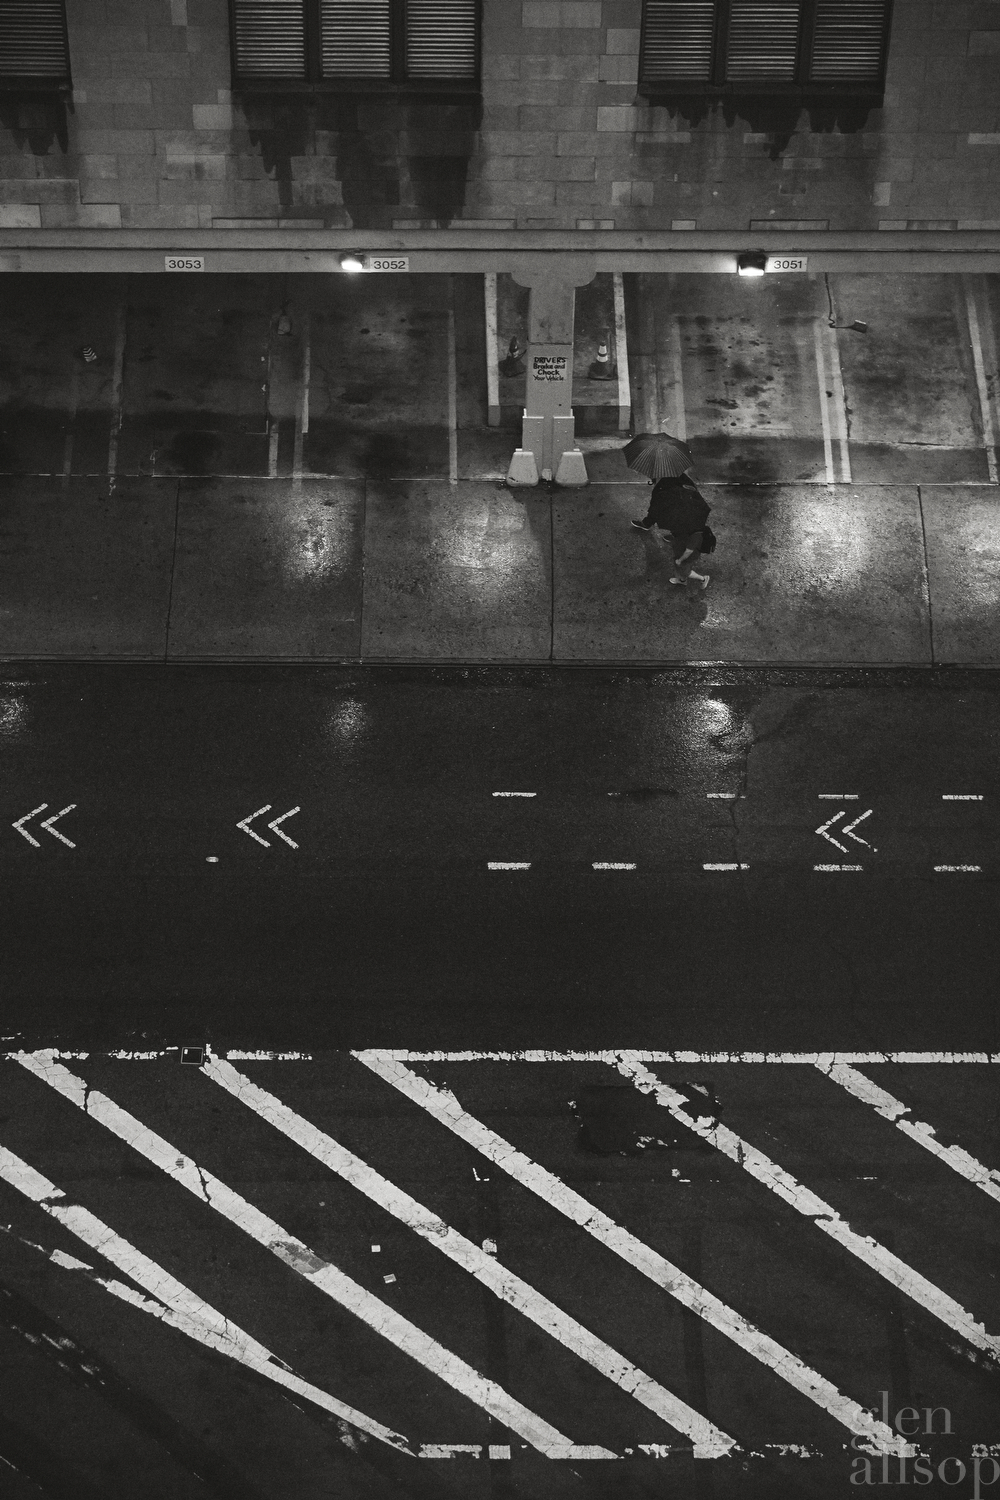 nyc-rain-new york-umbrella-black and white-photography